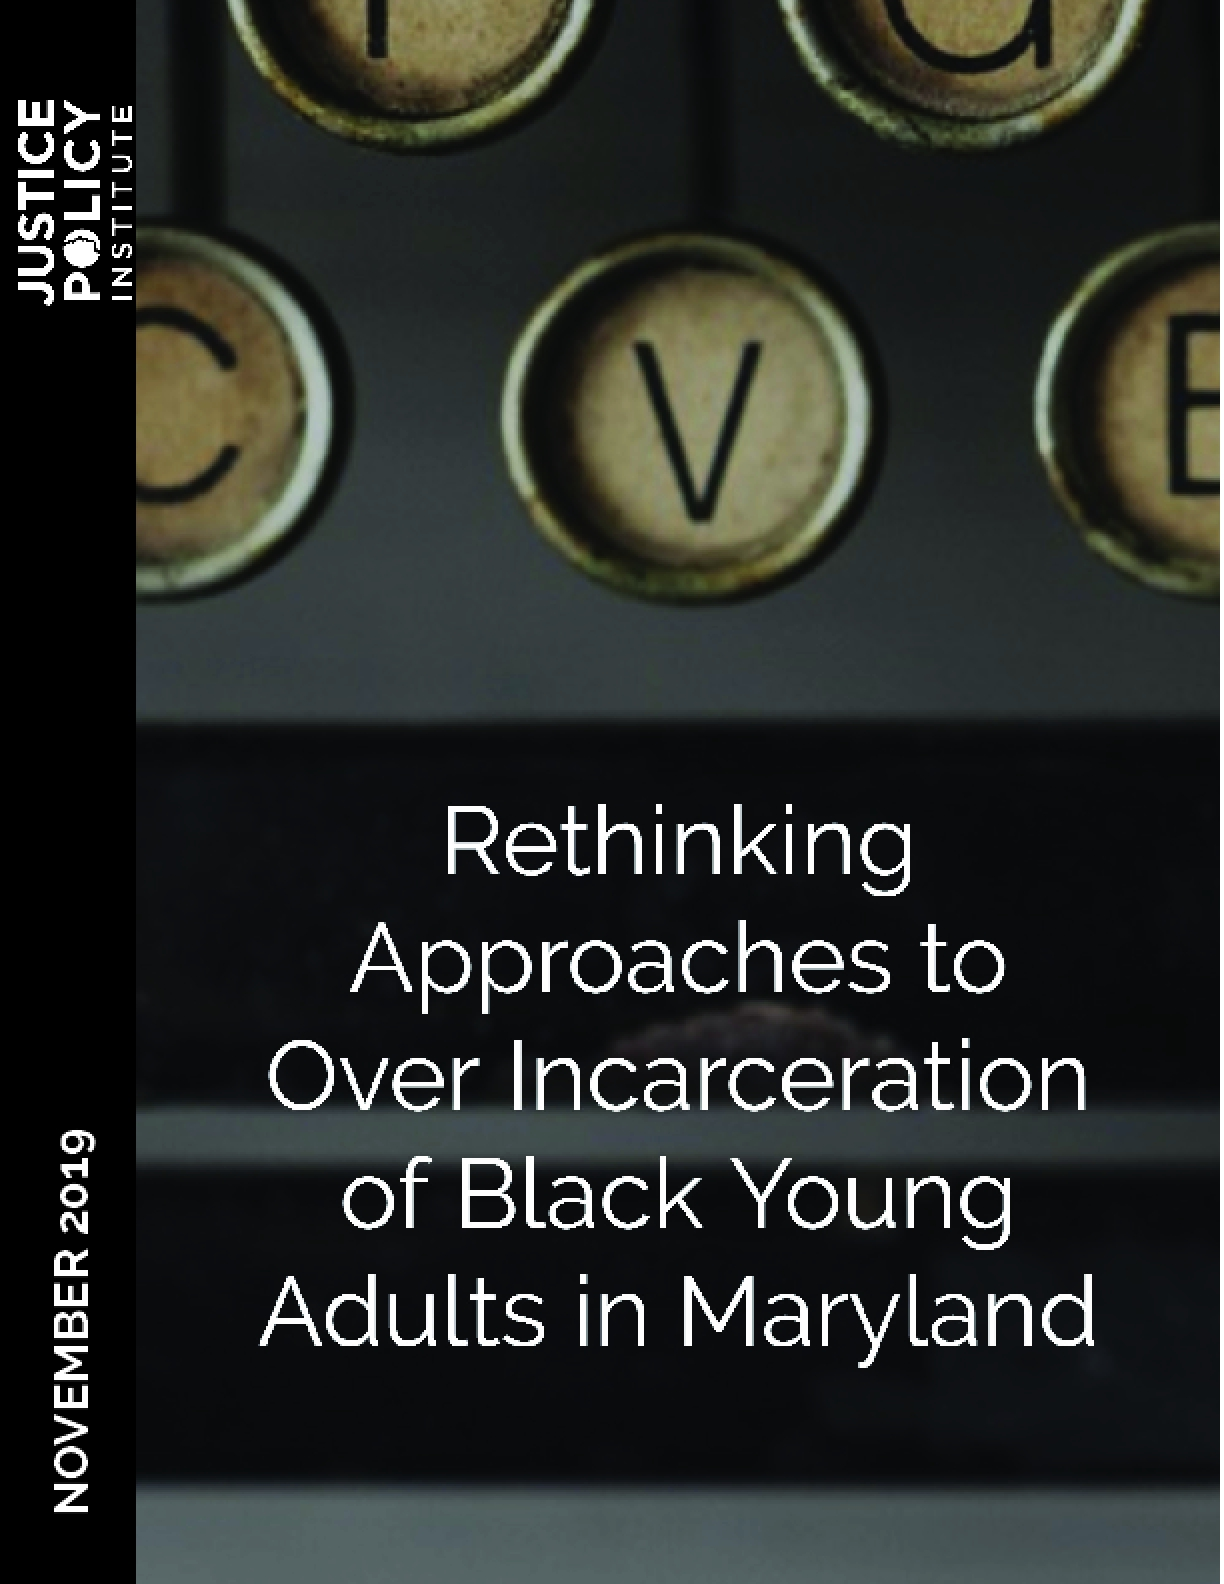 Rethinking Approaches to Over Incarceration of Black Young Adults in Maryland